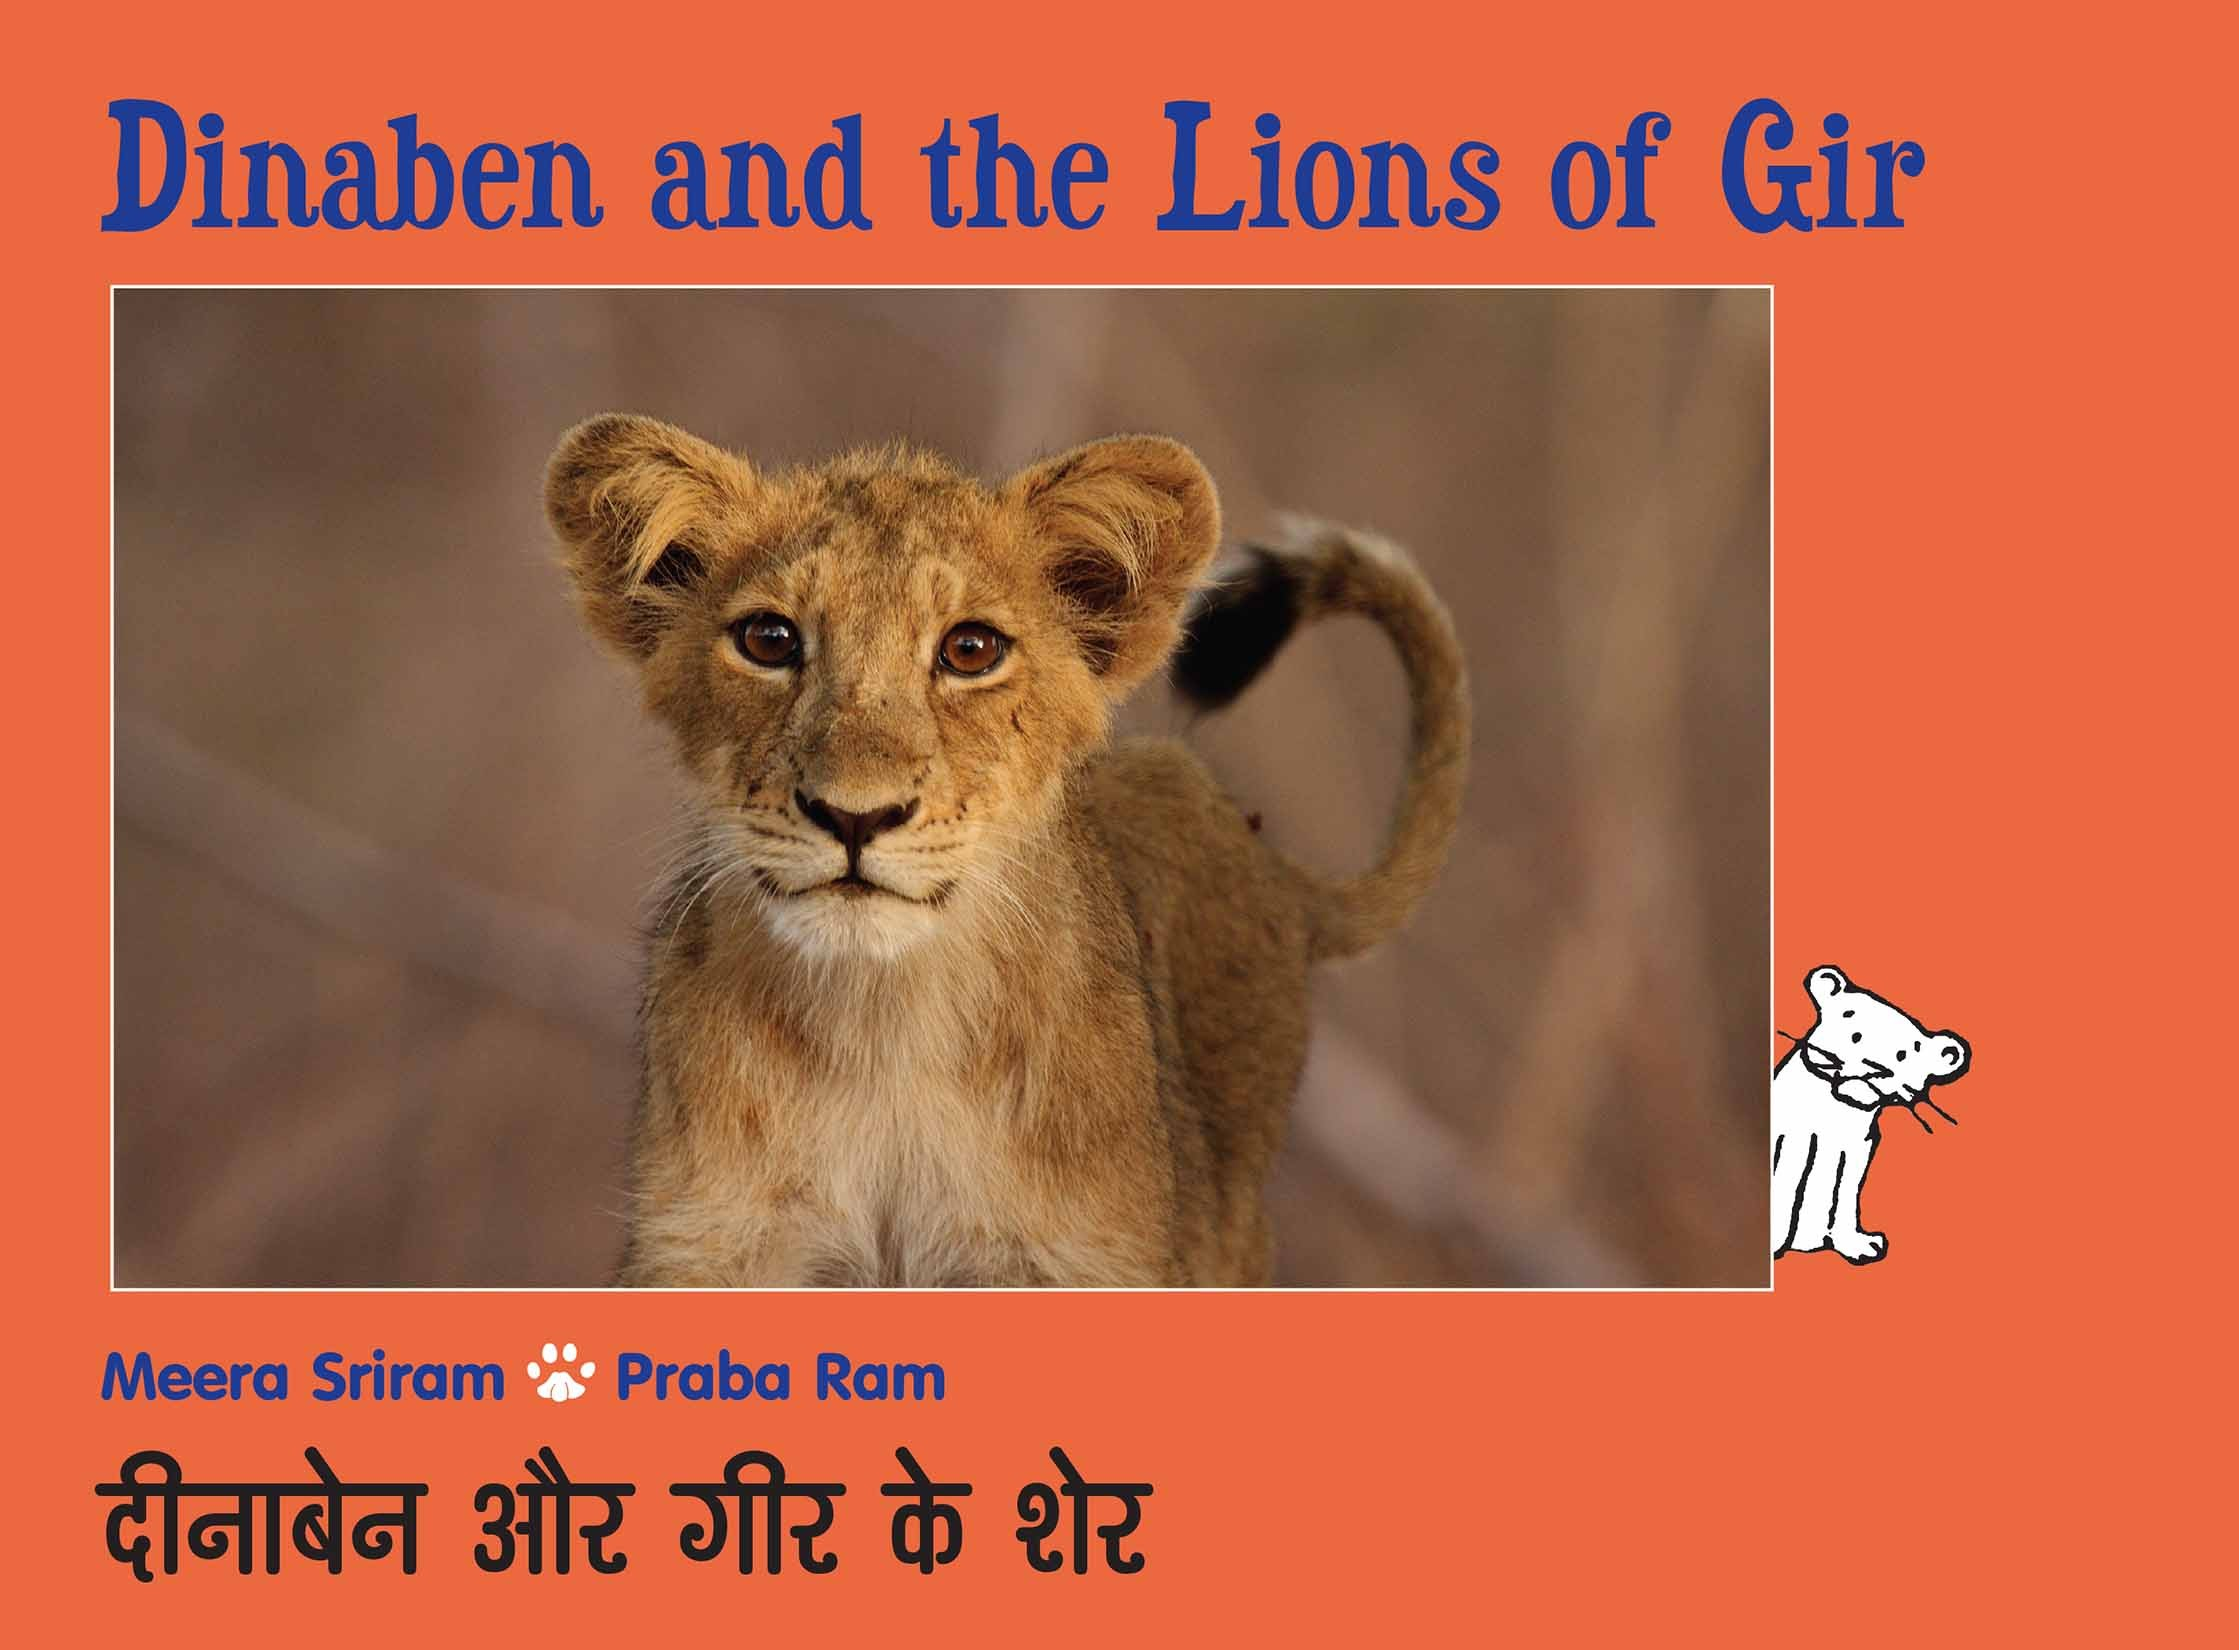 dinaben-and-the-lions-of-gir-dinaben-aur-gir-ke-sher-hindi